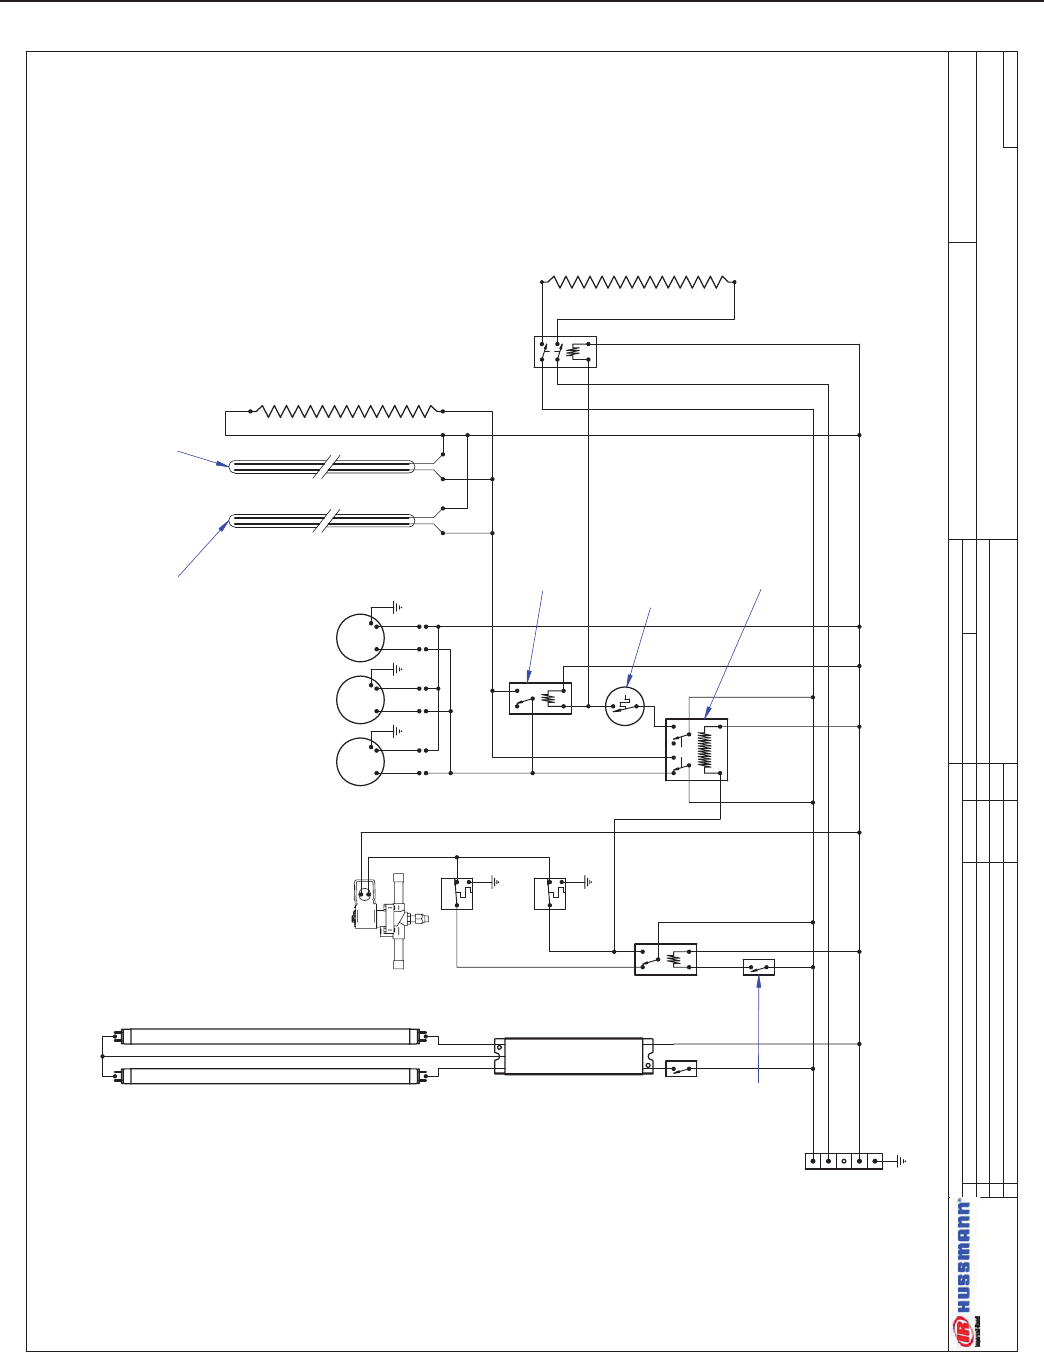 6b0c3921 3432 43fa ada4 bfb9776e5084 bg10 page 16 of hussman refrigerator fmss l user guide manualsonline com hussmann wiring diagrams at panicattacktreatment.co